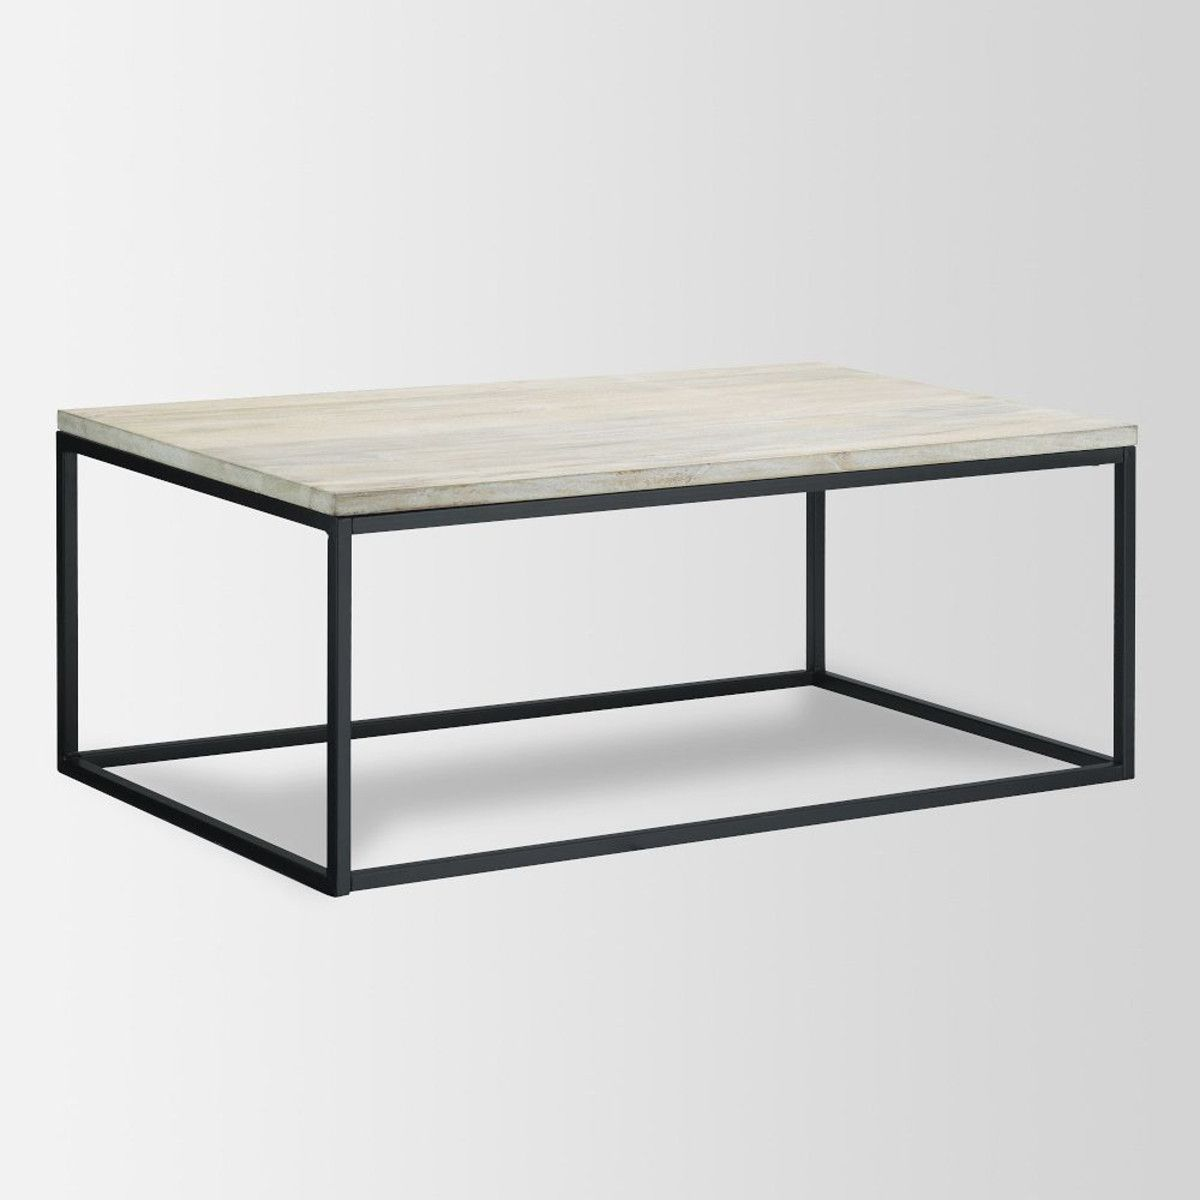 Marvelous Box Frame Coffee Table   Solid Slab Mango Wood Top With Café Finish On An  Antique Bronze Finished Steel Frame (via West Elm) | For The Home |  Pinterest ...